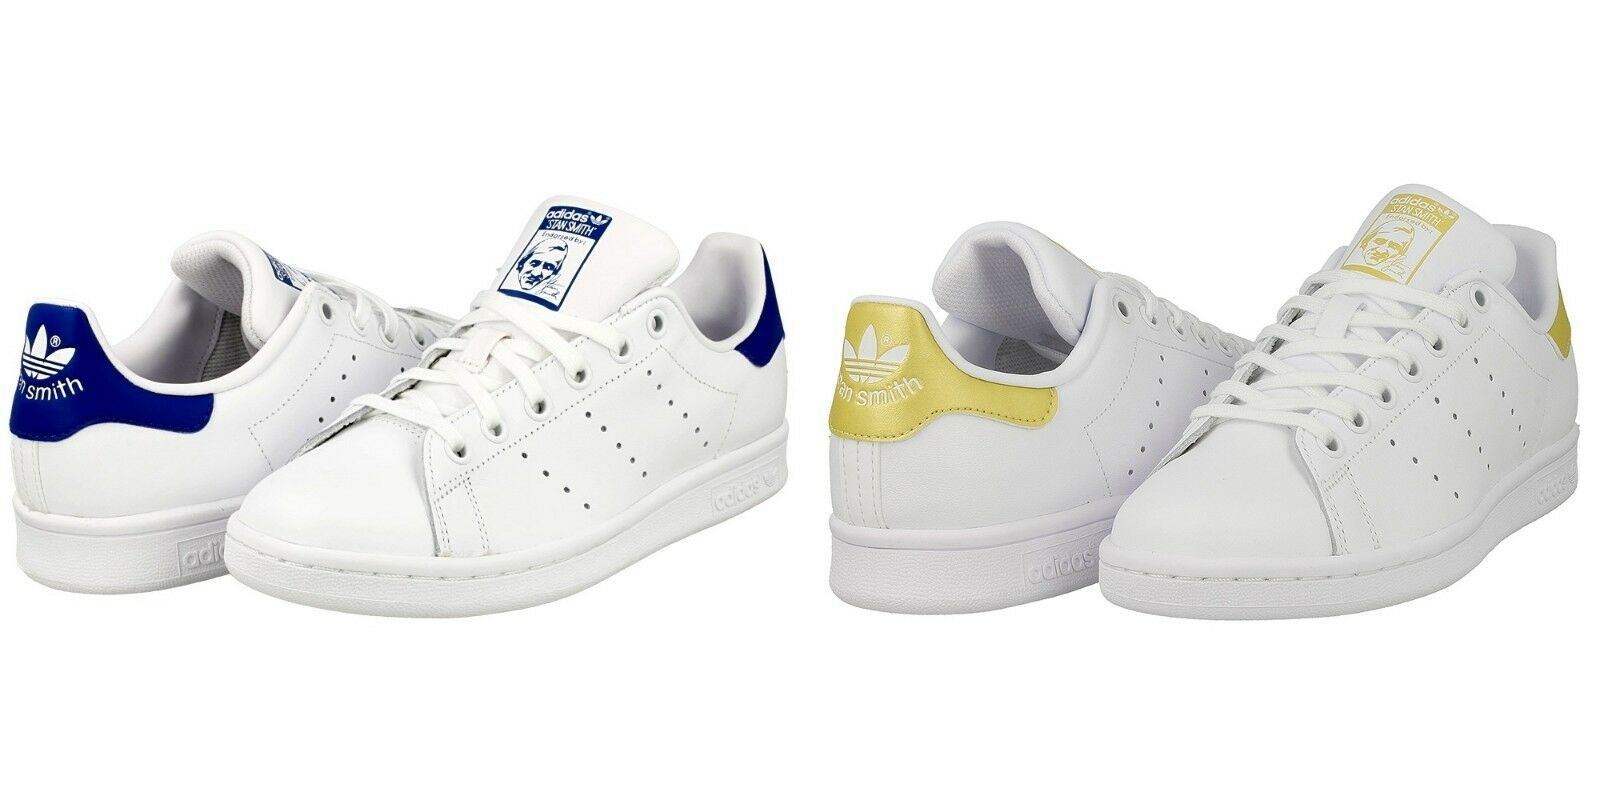 ADIDAS STAN SMITH SPORT SHOES WOMAN BABY BOY/GIRL SHOES S74778 BB0209